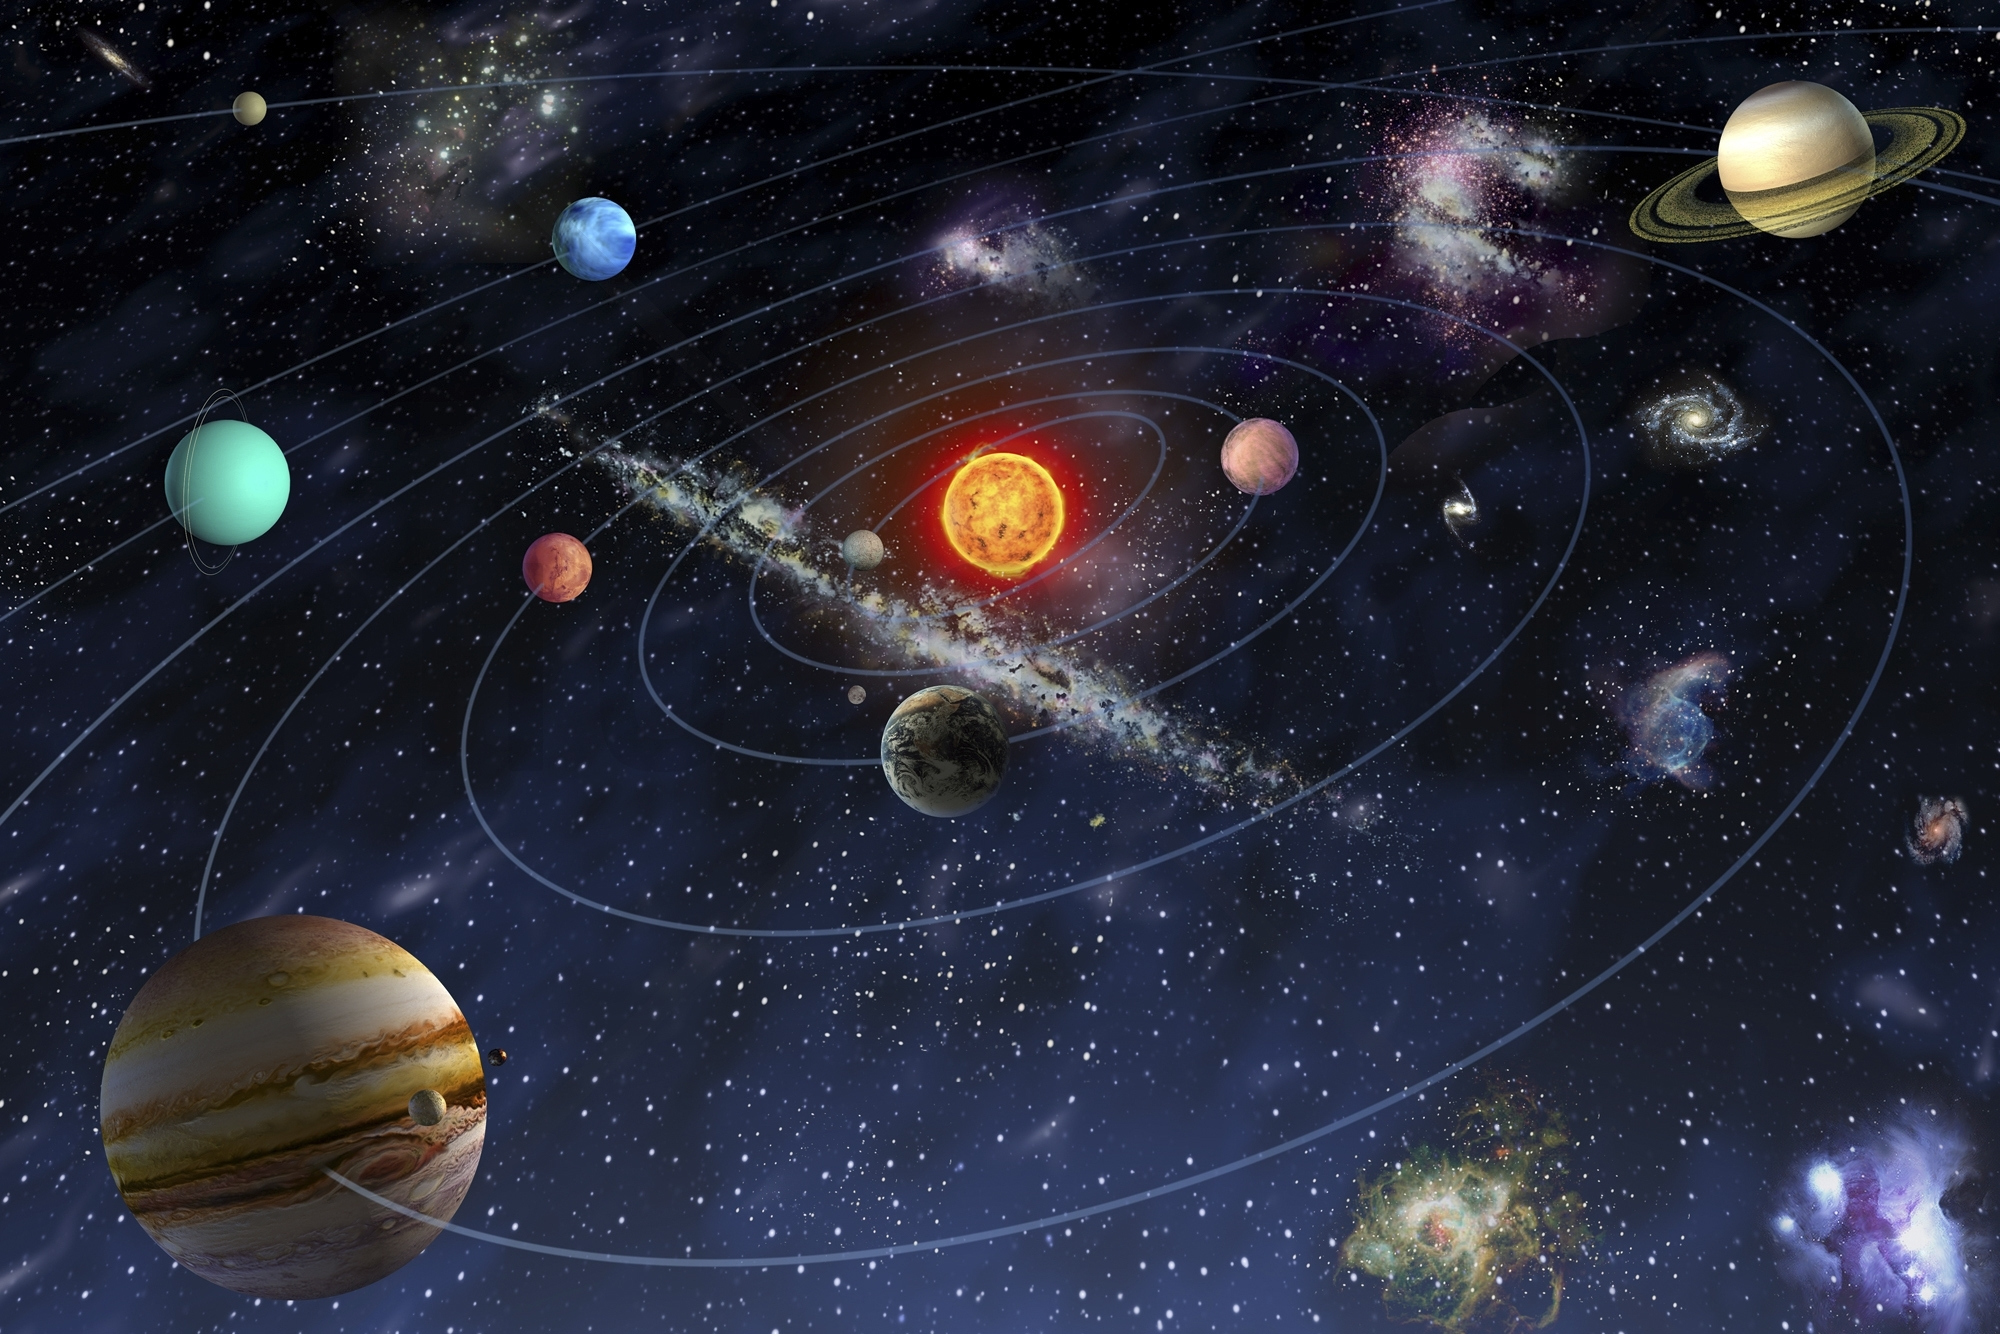 tma:25 - solar system wallpapers, solar system hd pictures - 35 free